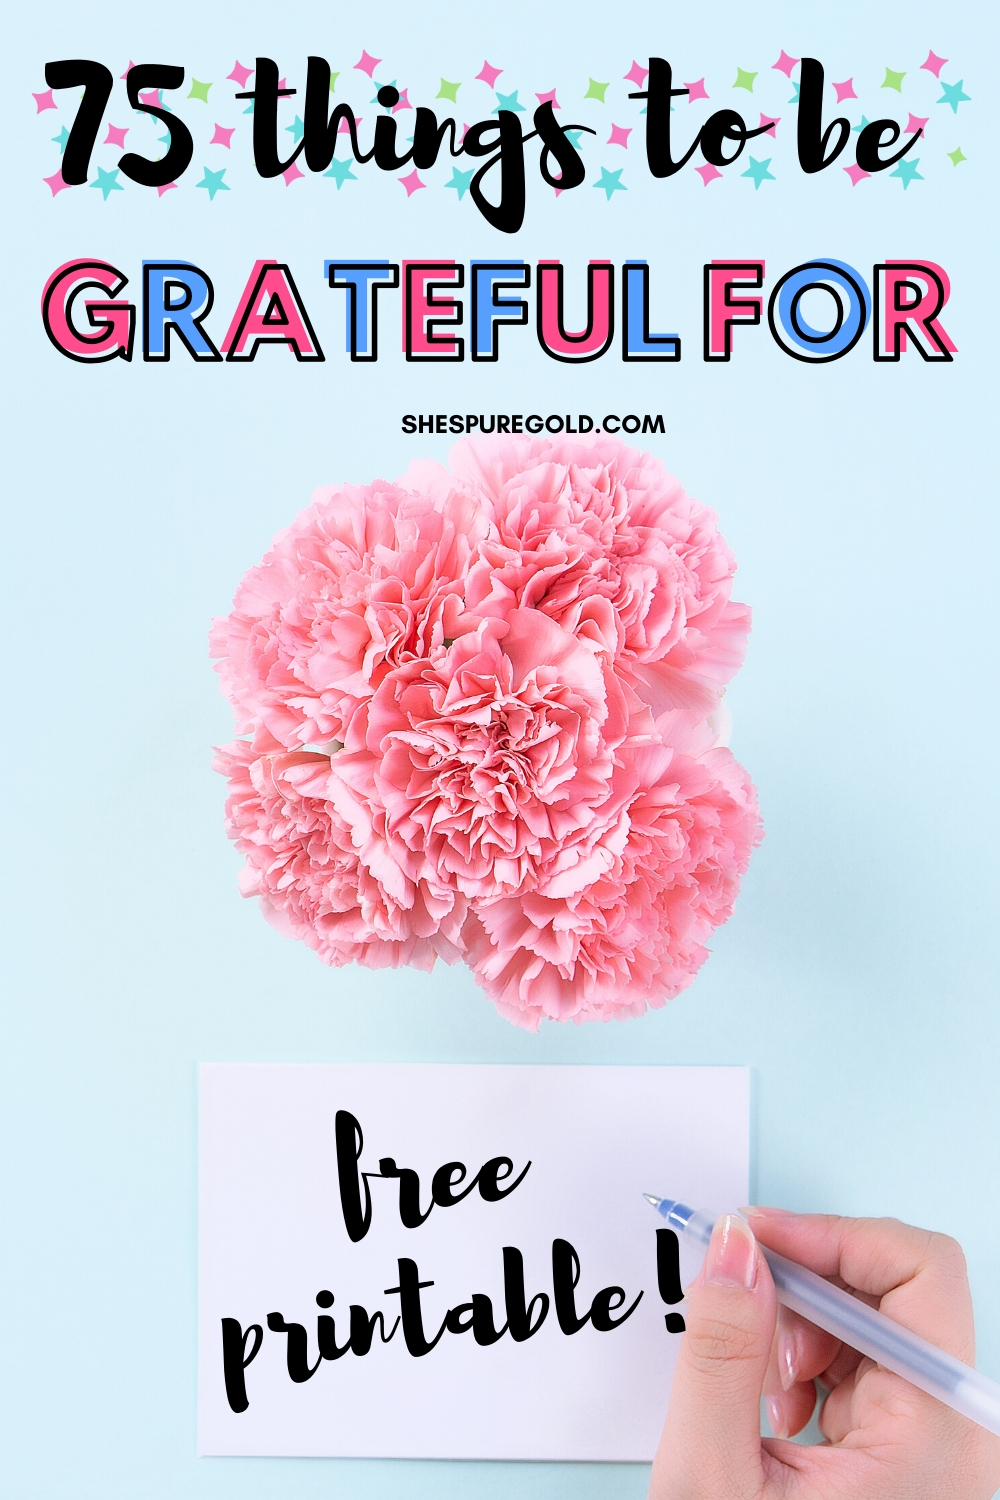 75 things to be grateful for